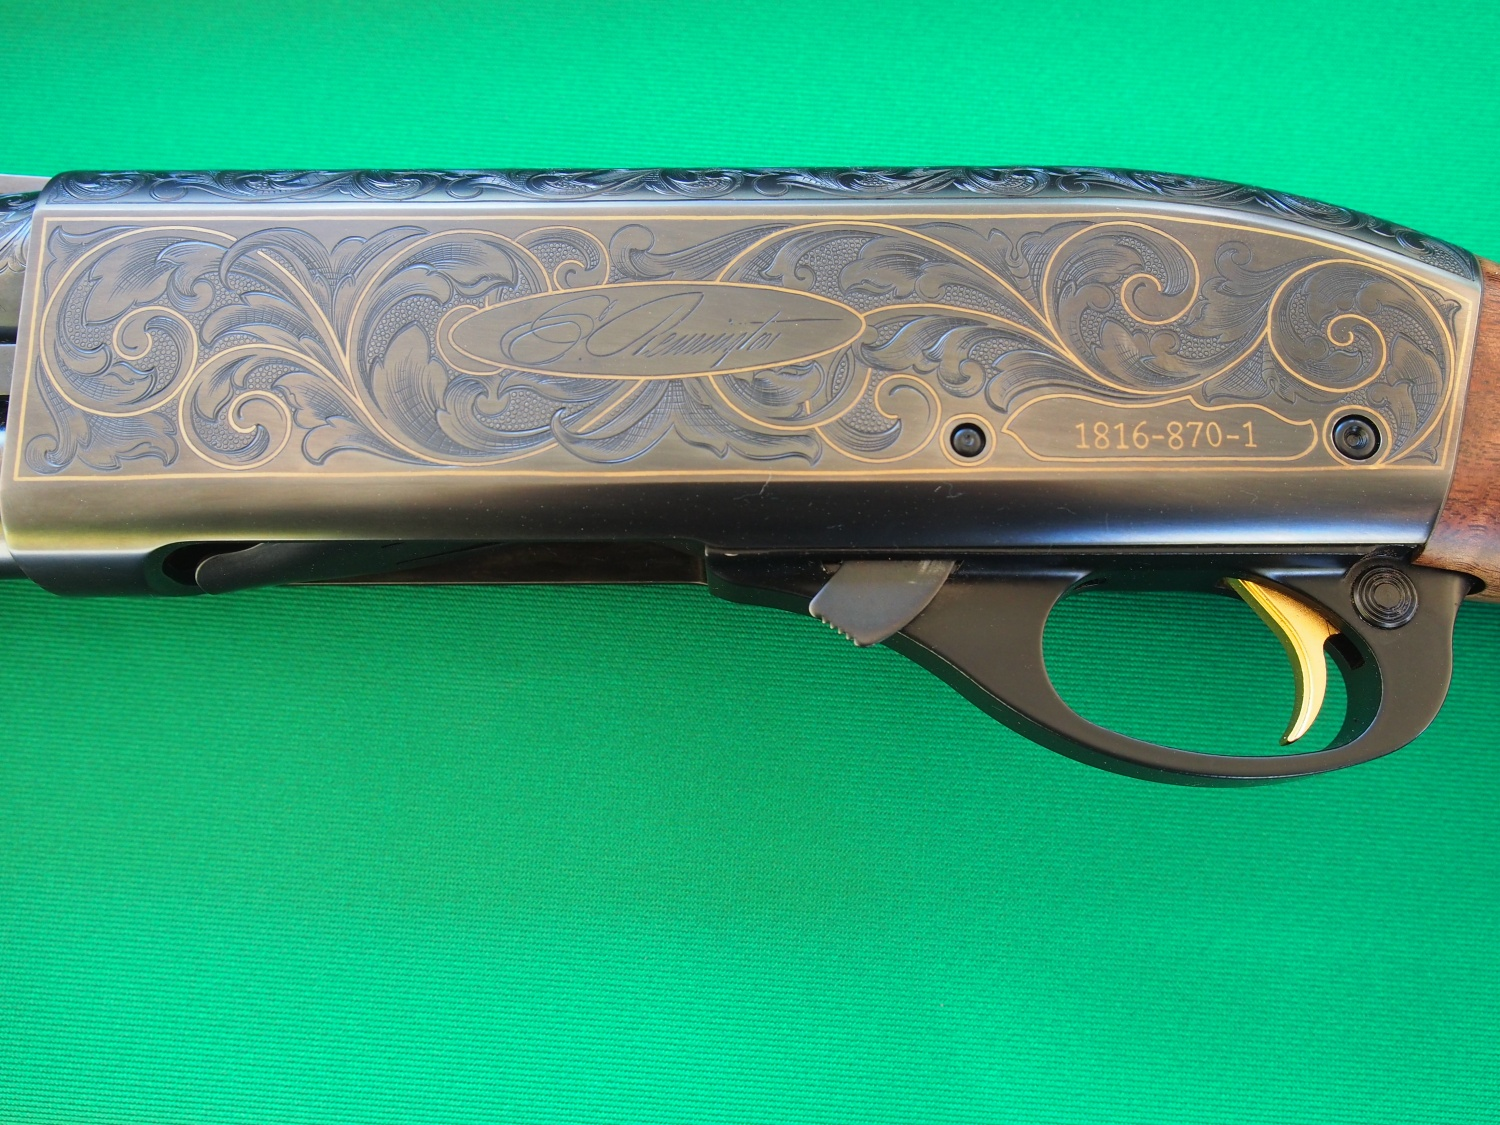 The left side of a high grade 870 with engraving covering the receiver and gold inlay throughout.